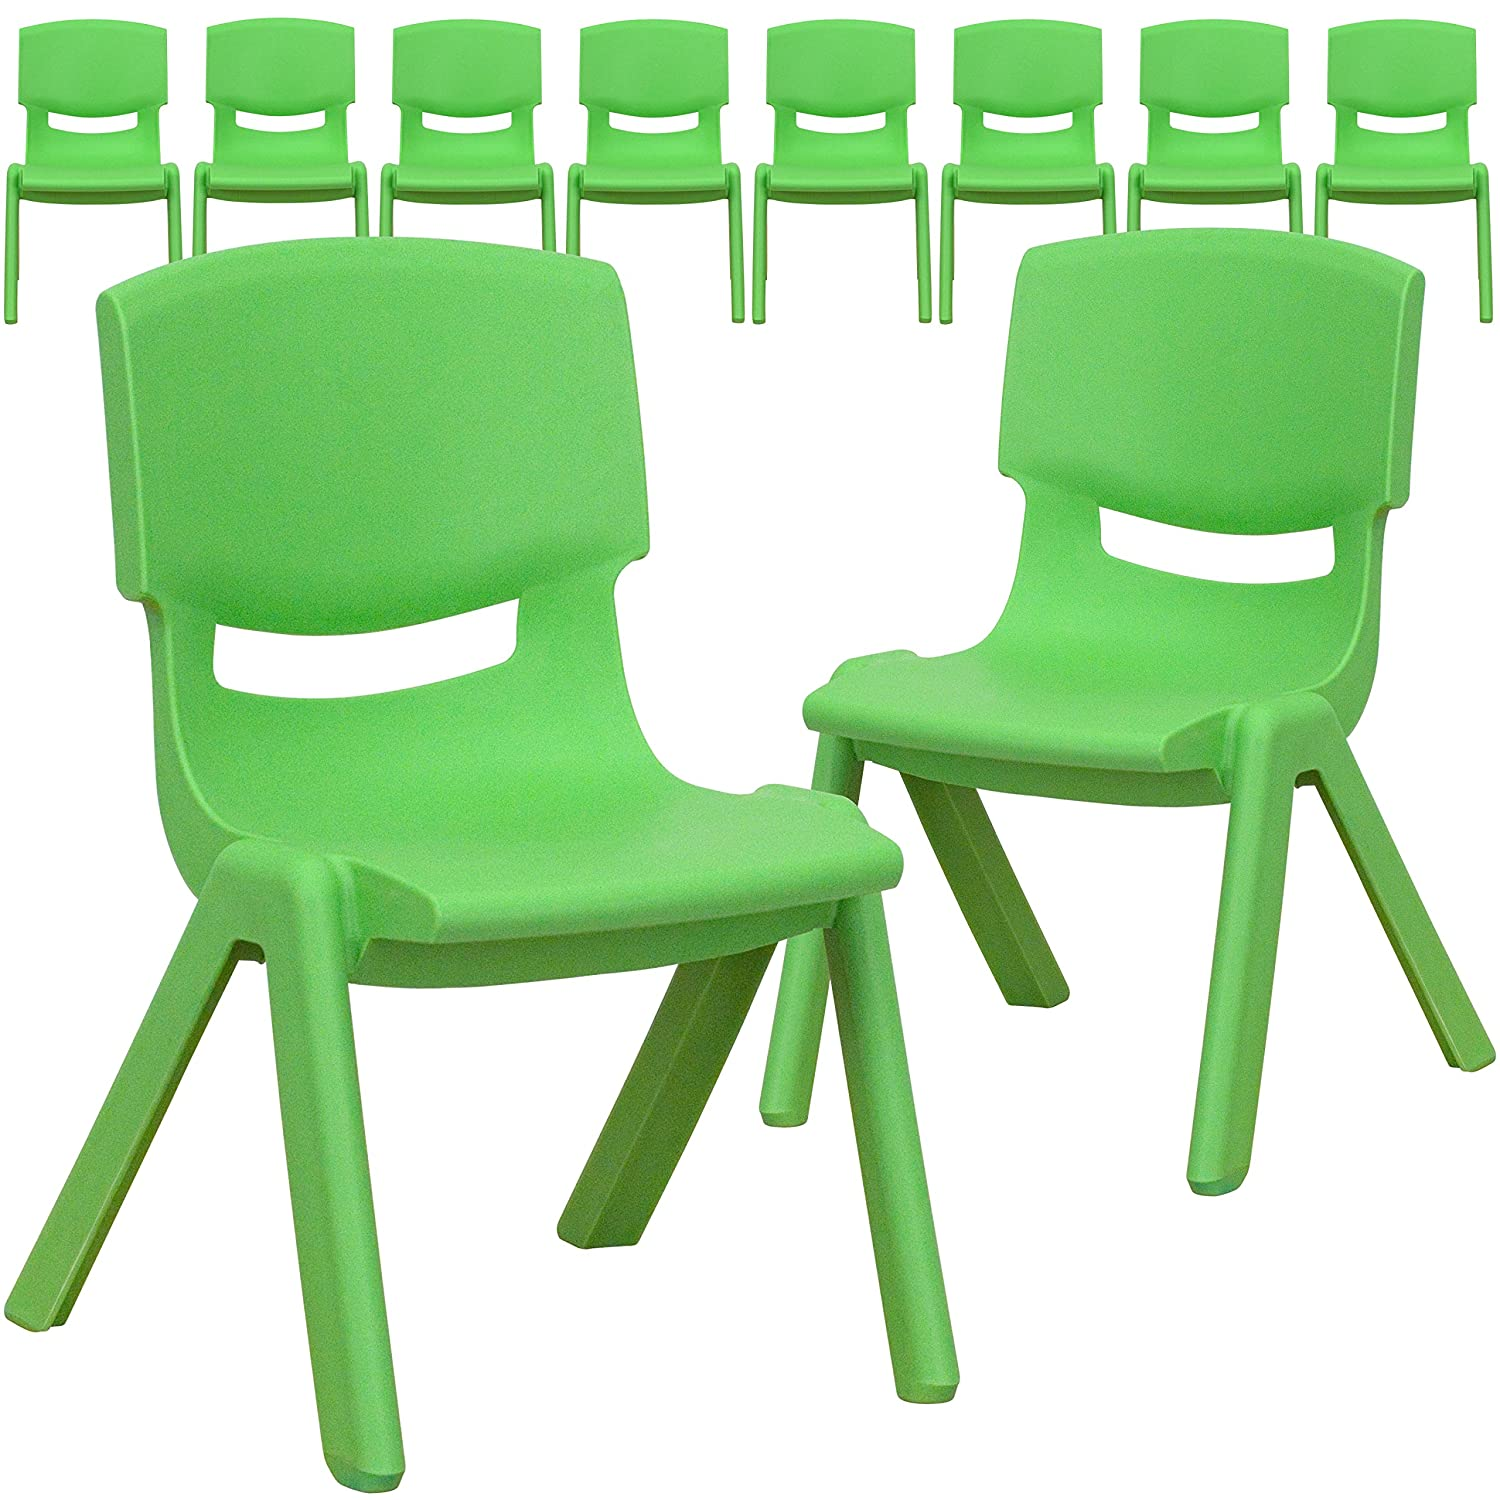 Plastic school chairs - Amazon Com Flash Furniture Green Plastic Stackable School Chair With 10 5 Seat Height Kitchen Dining